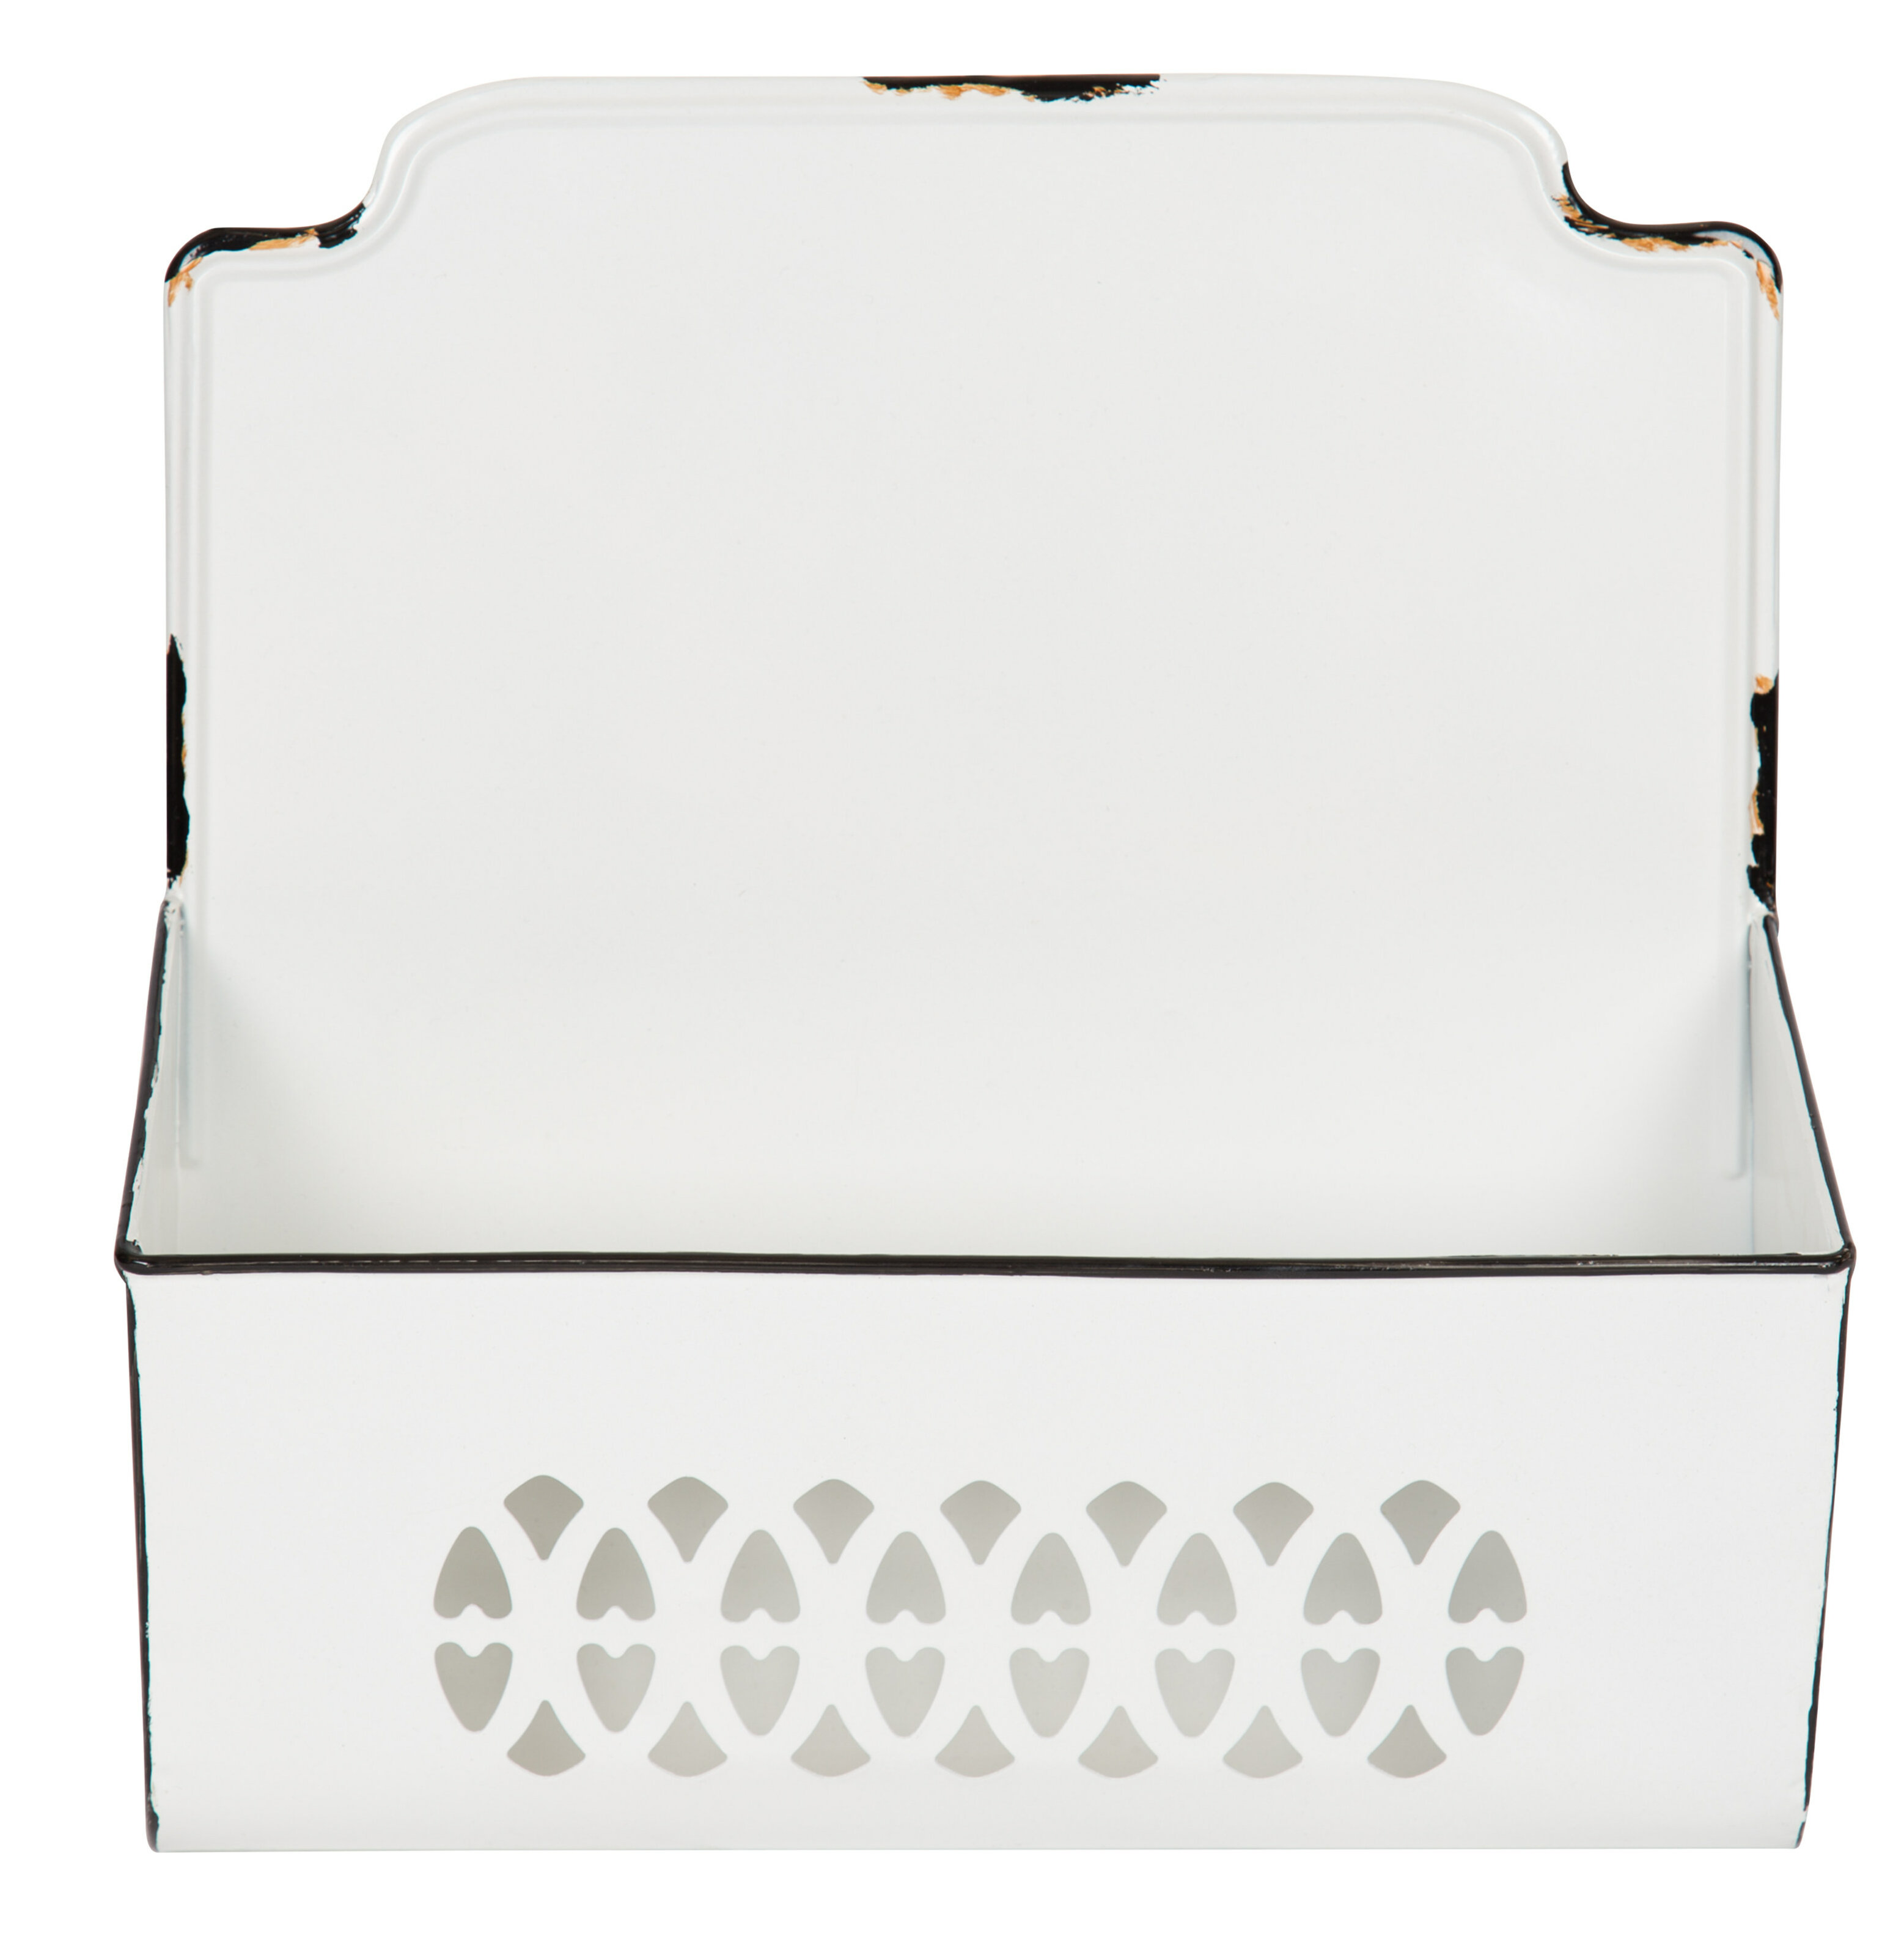 Catch All Distressed White with Black Trim Metal Wall Bin